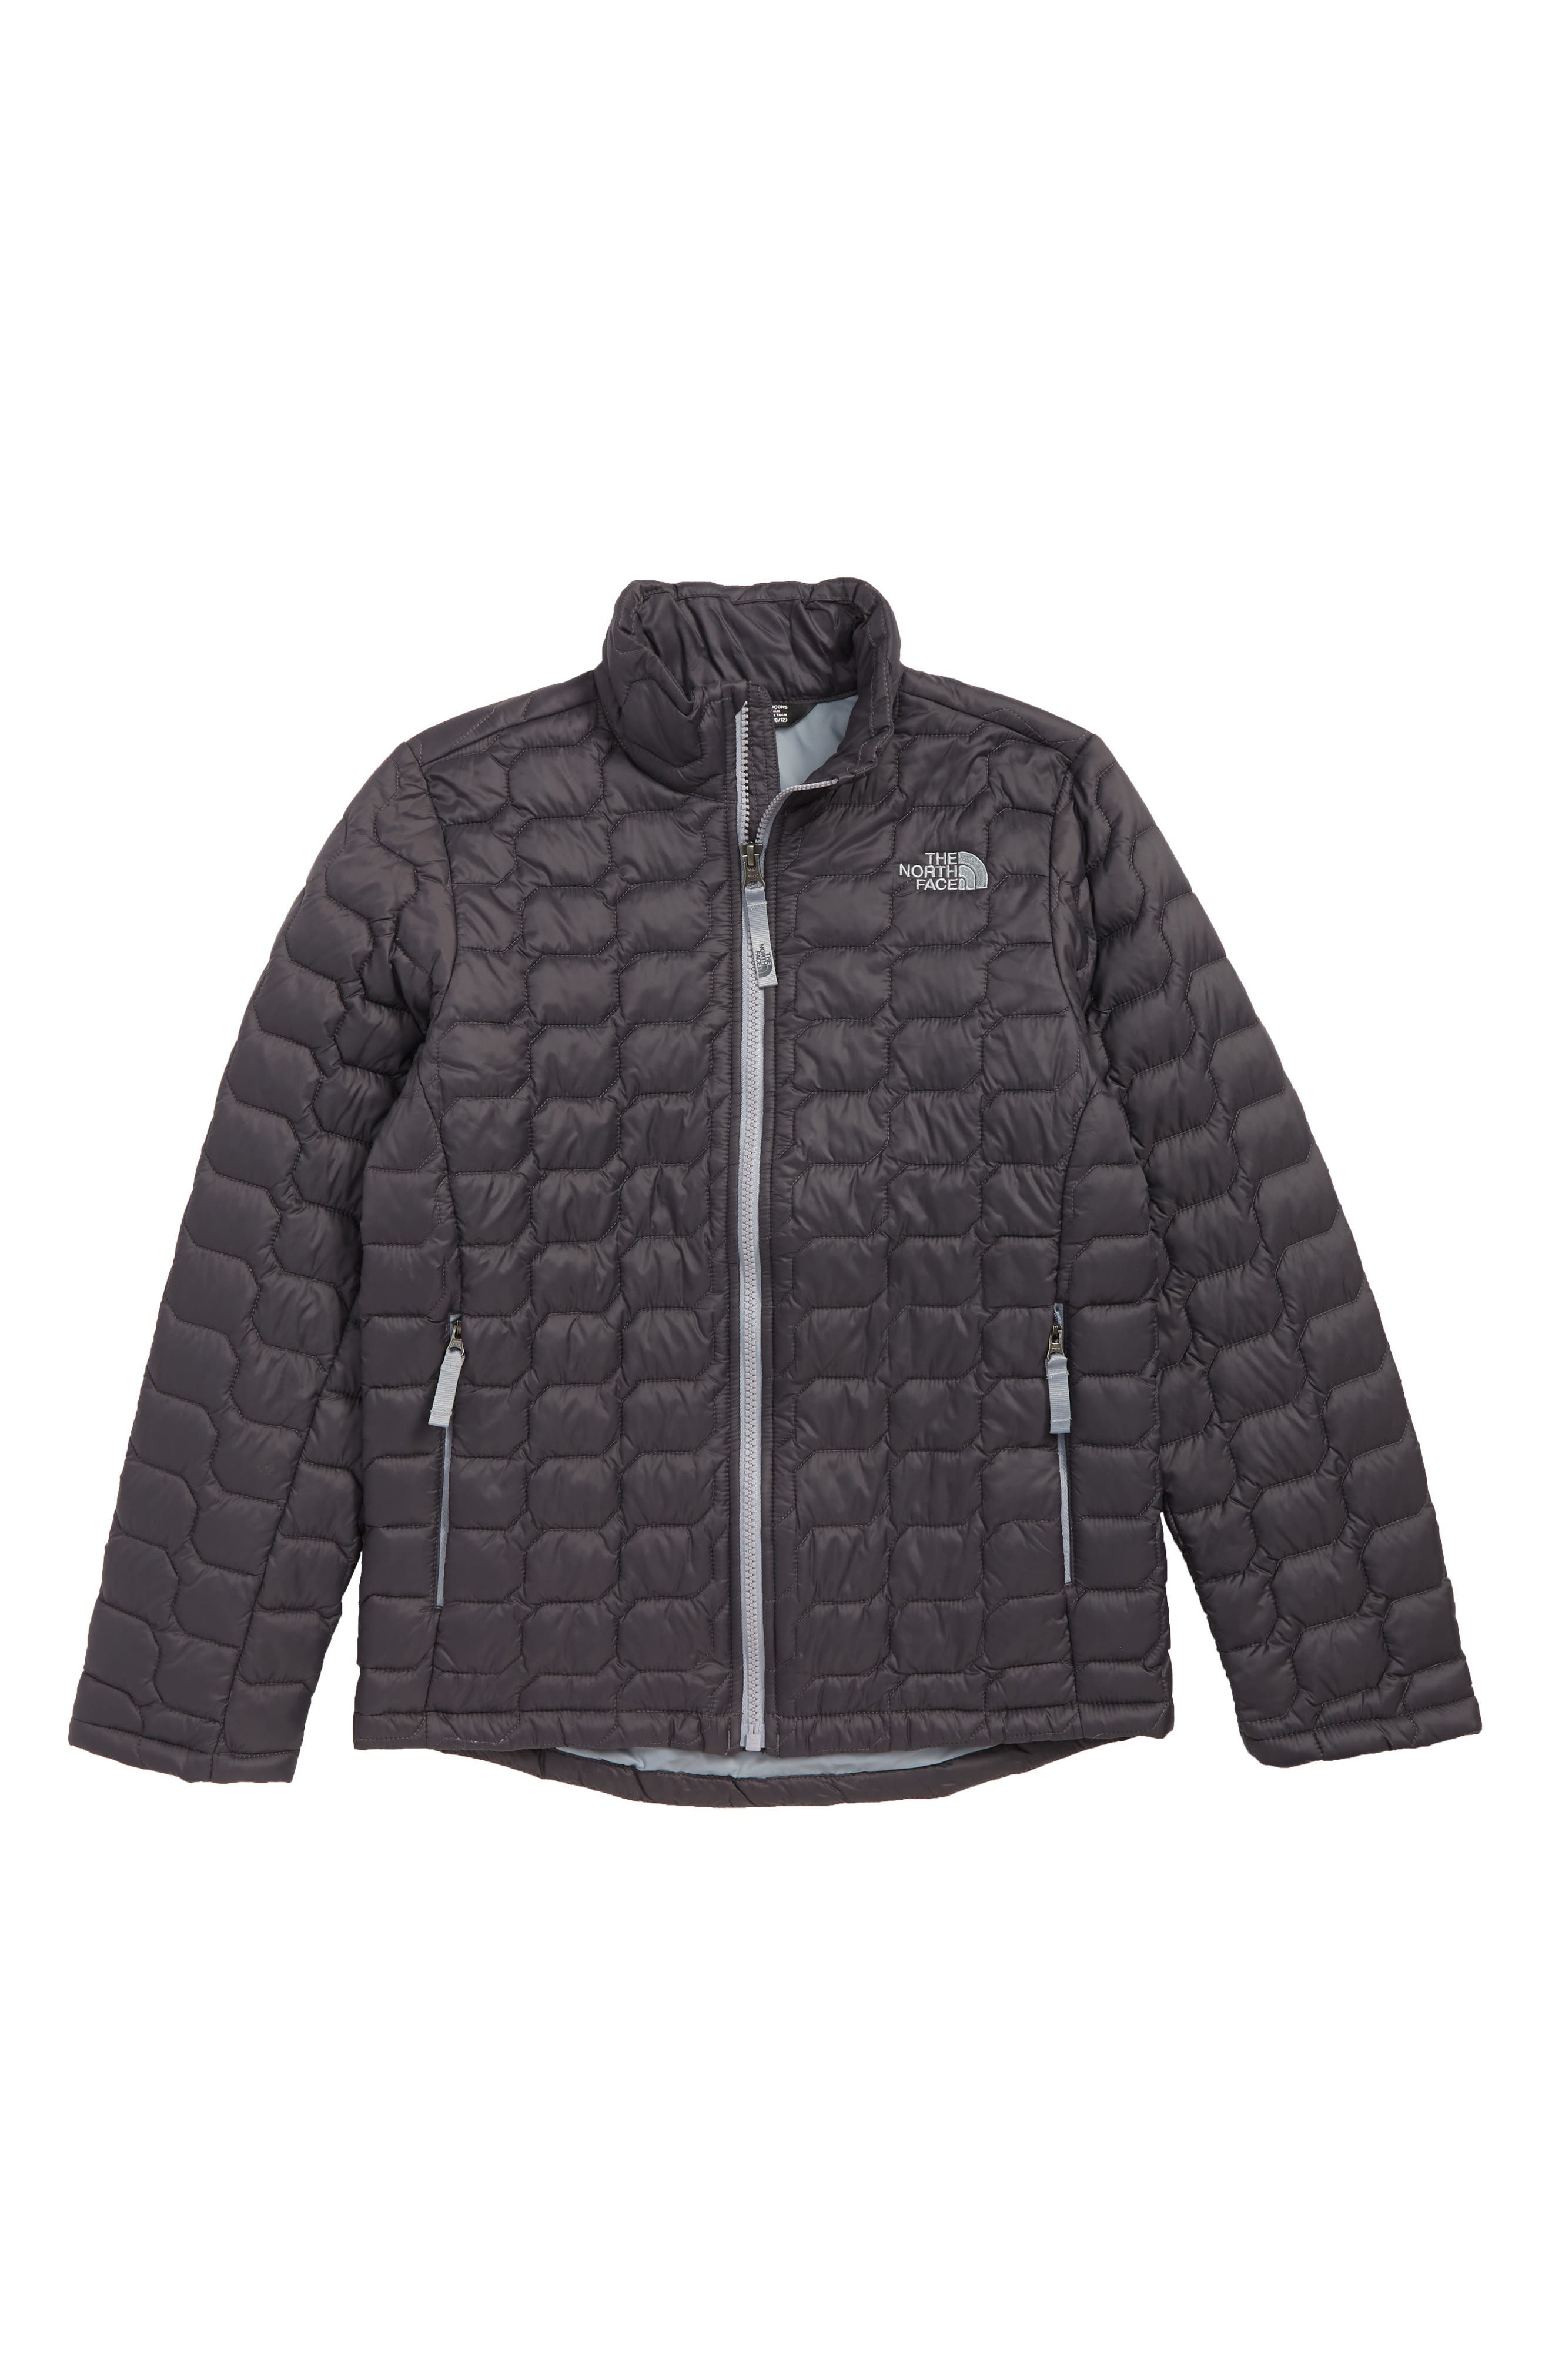 Boys The North Face Thermoball(TM) Primaloft Packable Jacket Size S (78)  Grey